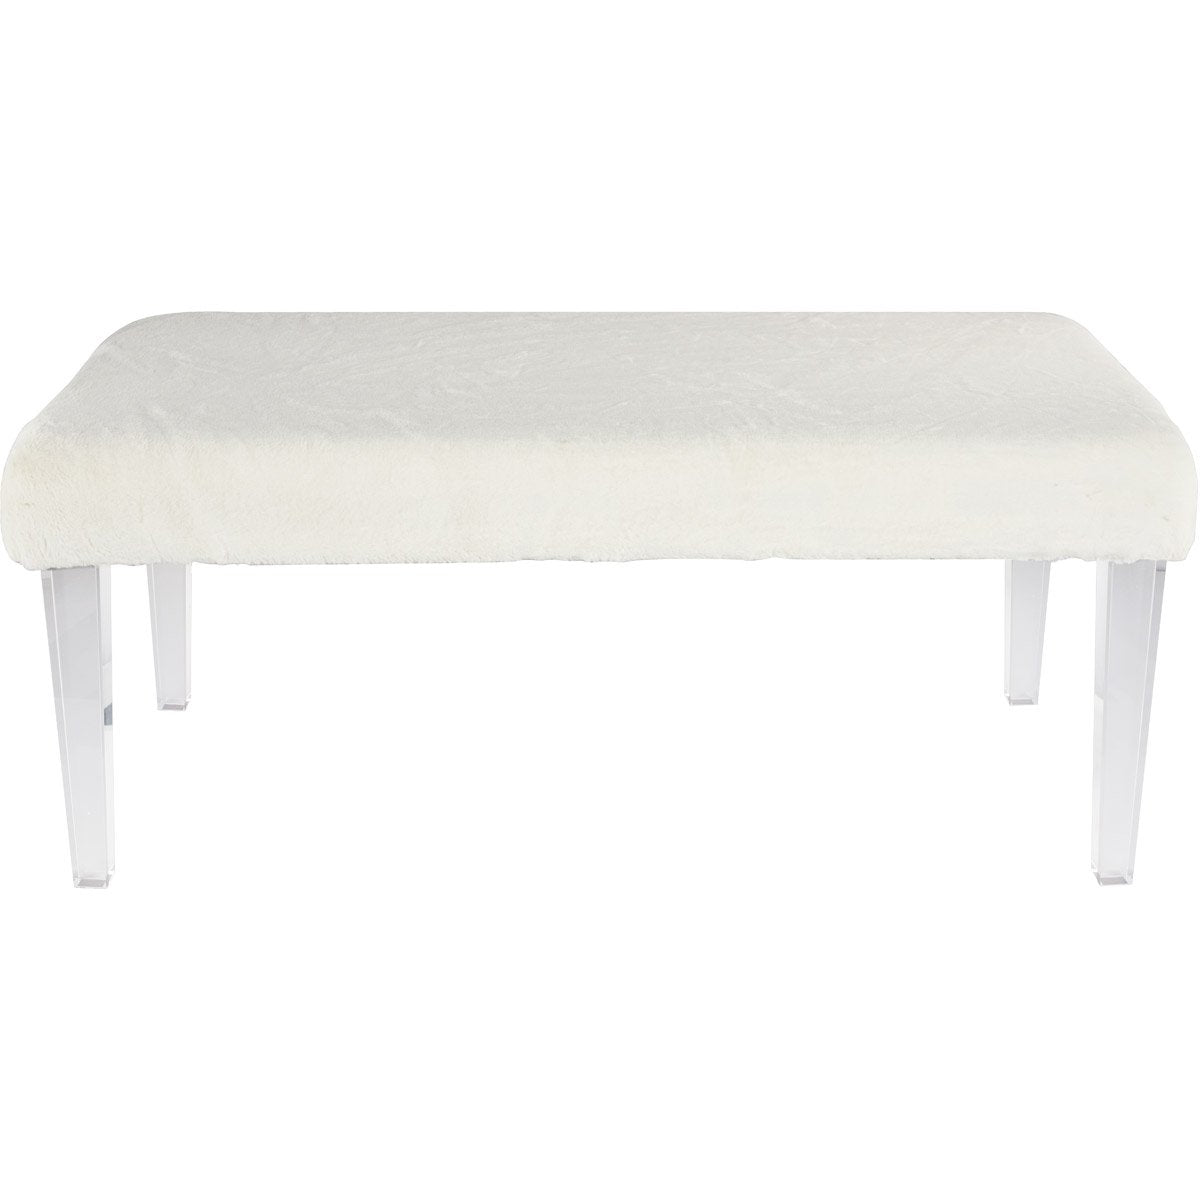 Electron 40 X 18 Bench - White & Clear Finish (Af1001) Bench